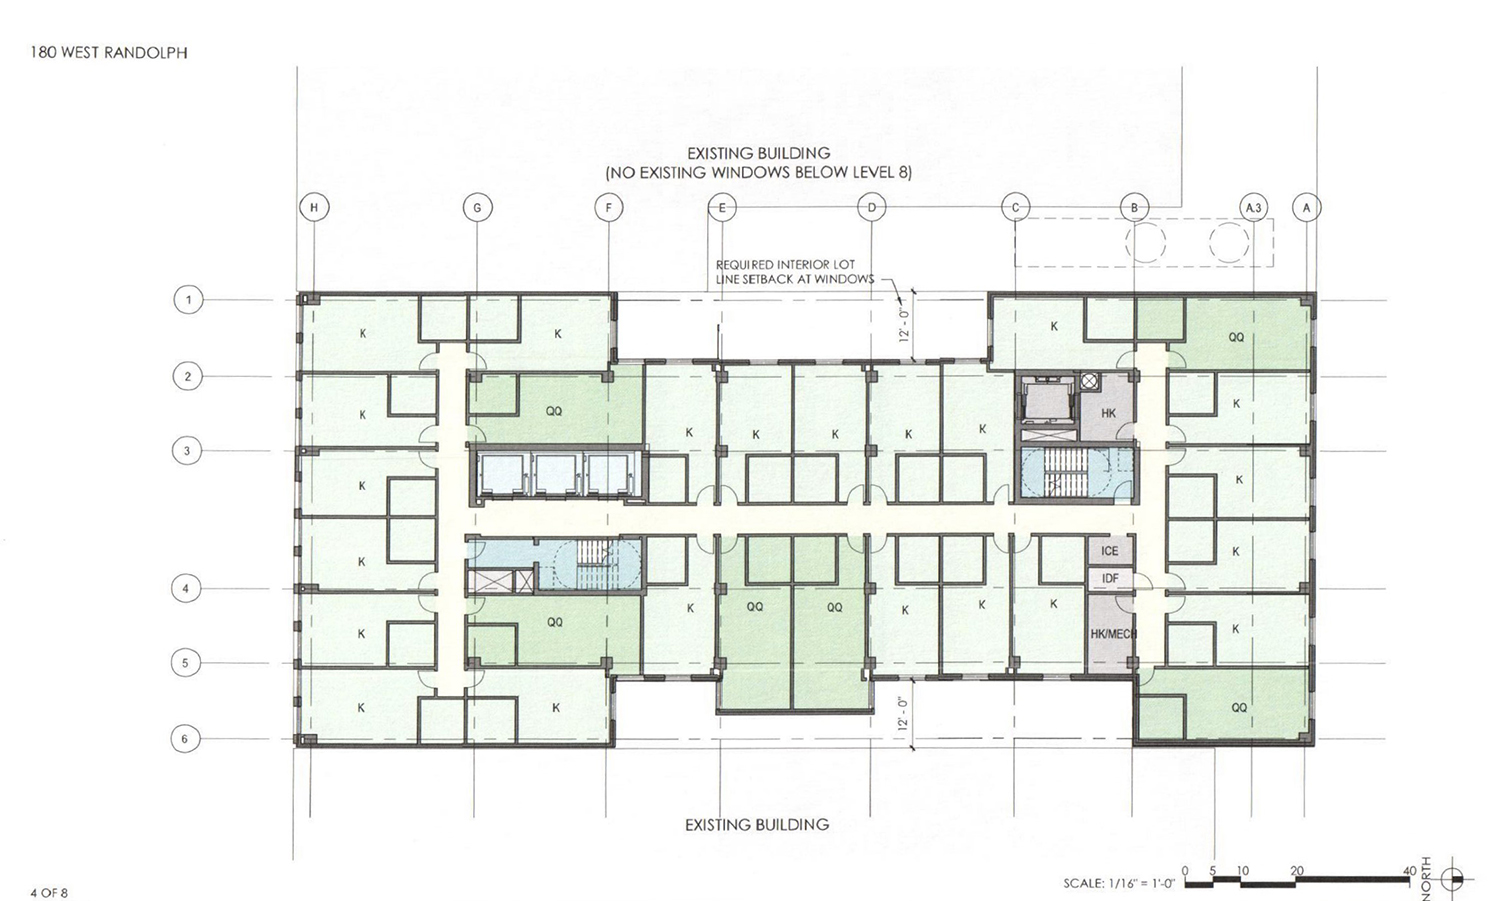 Levels 3-7 Floor Plan for 180 W Randolph Street. Drawing by DLR Group